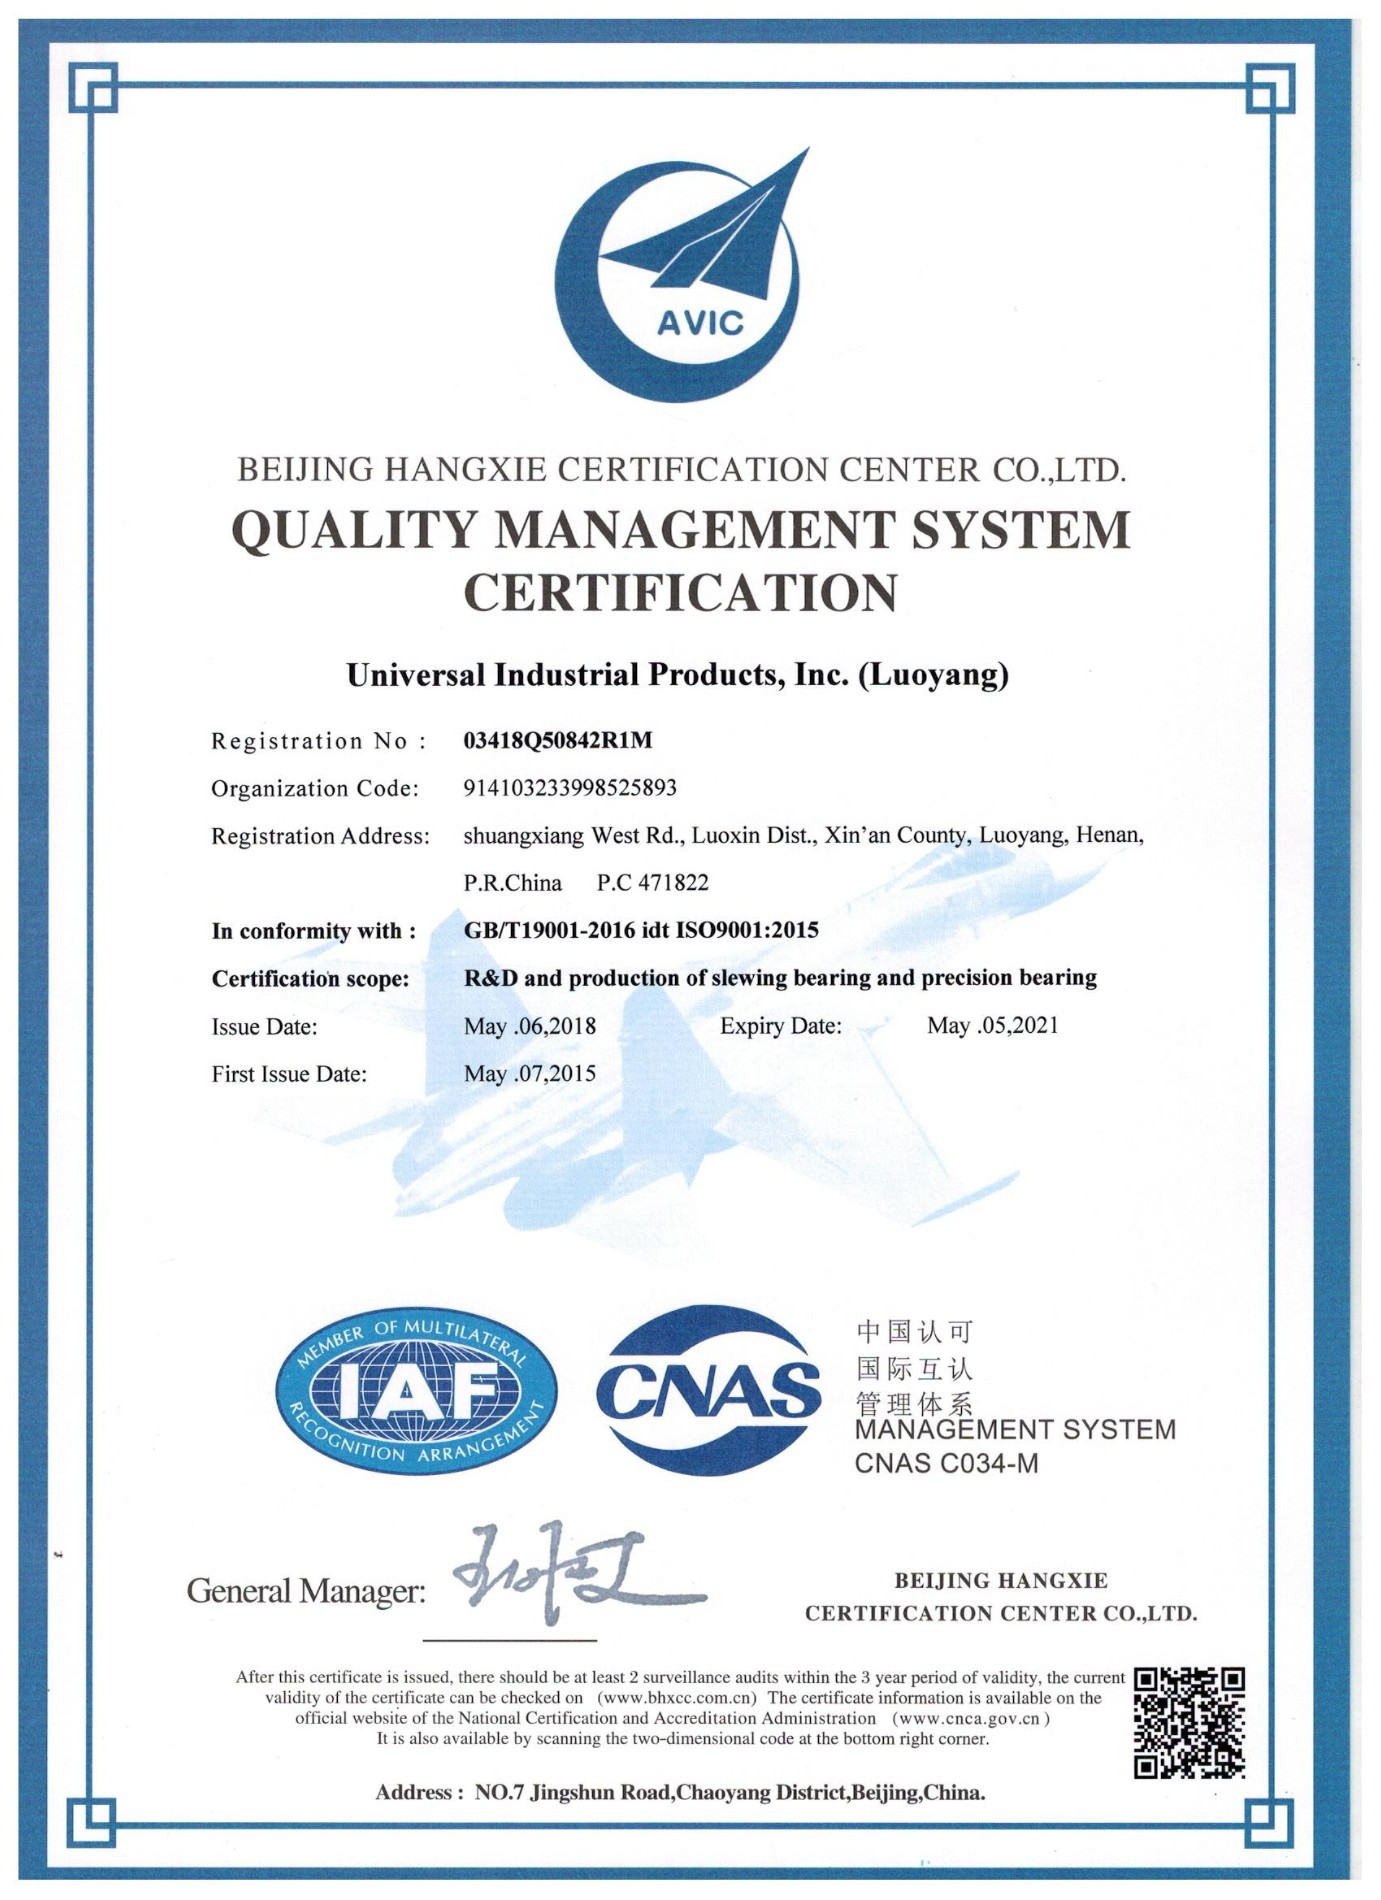 We're ISO9001:2015 Certified Manufacturer